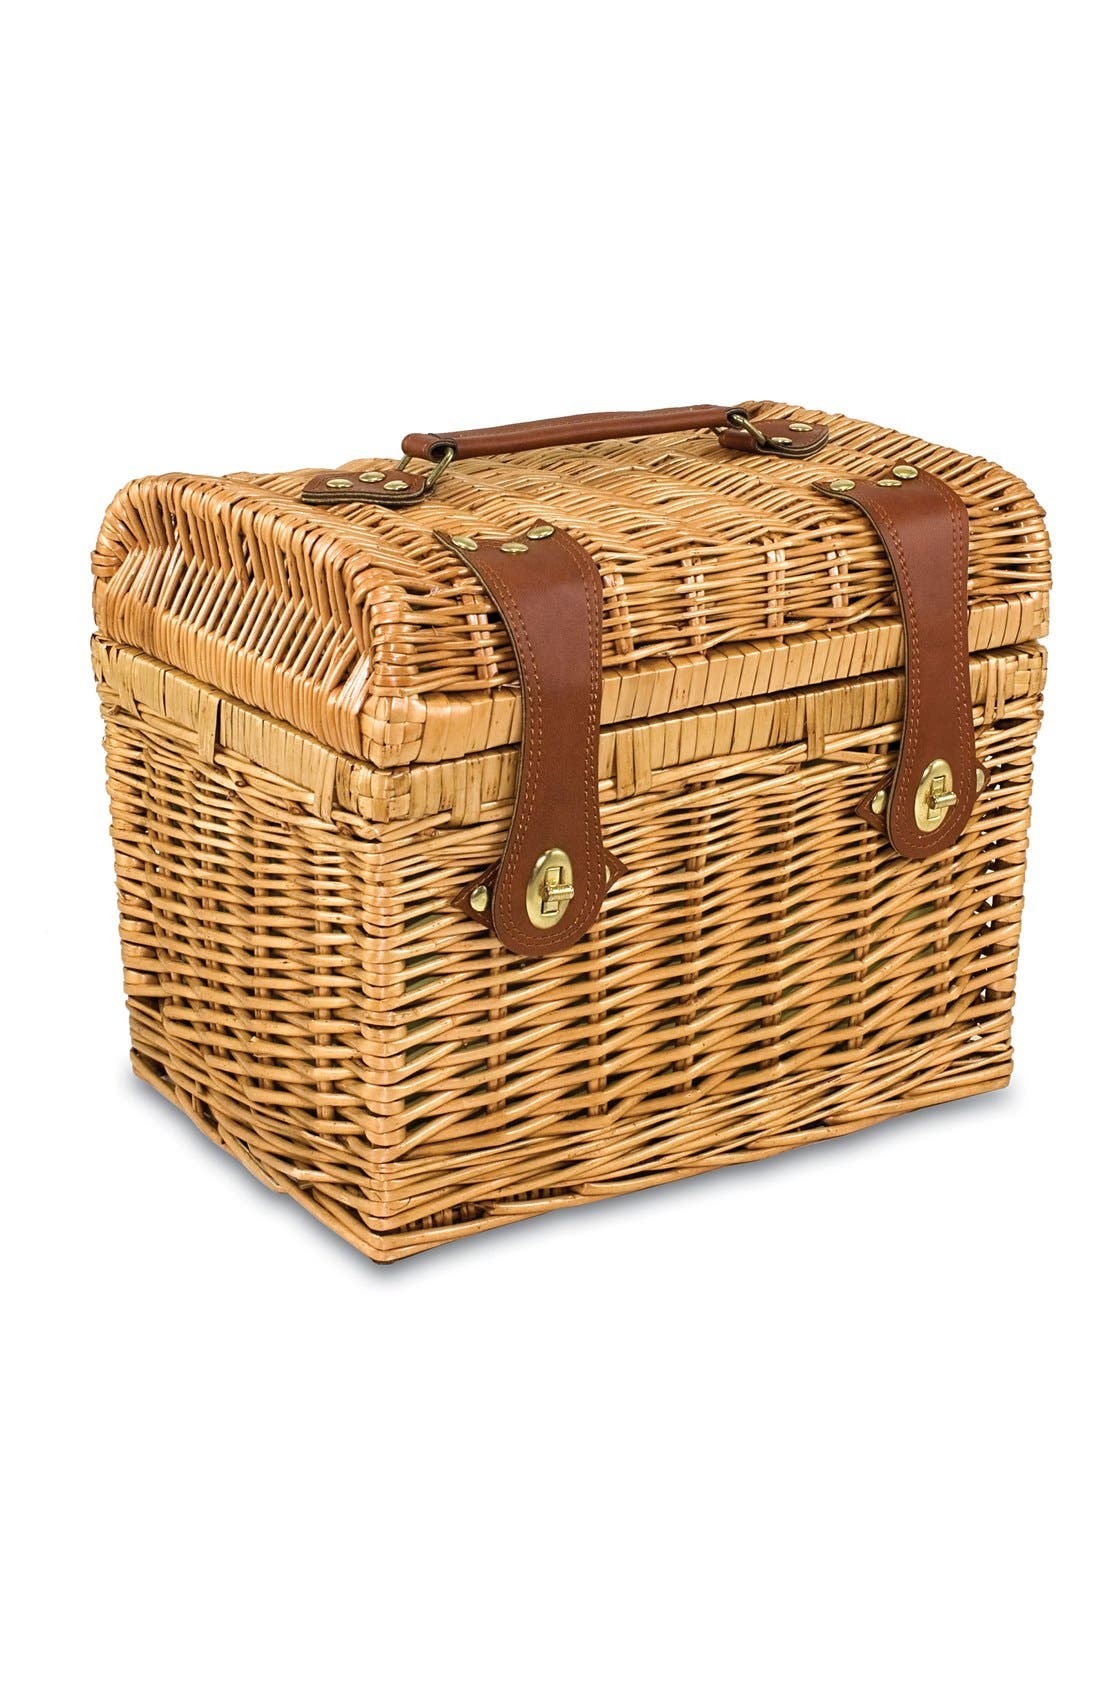 'Napa' Wicker Picnic Basket,                             Alternate thumbnail 3, color,                             200